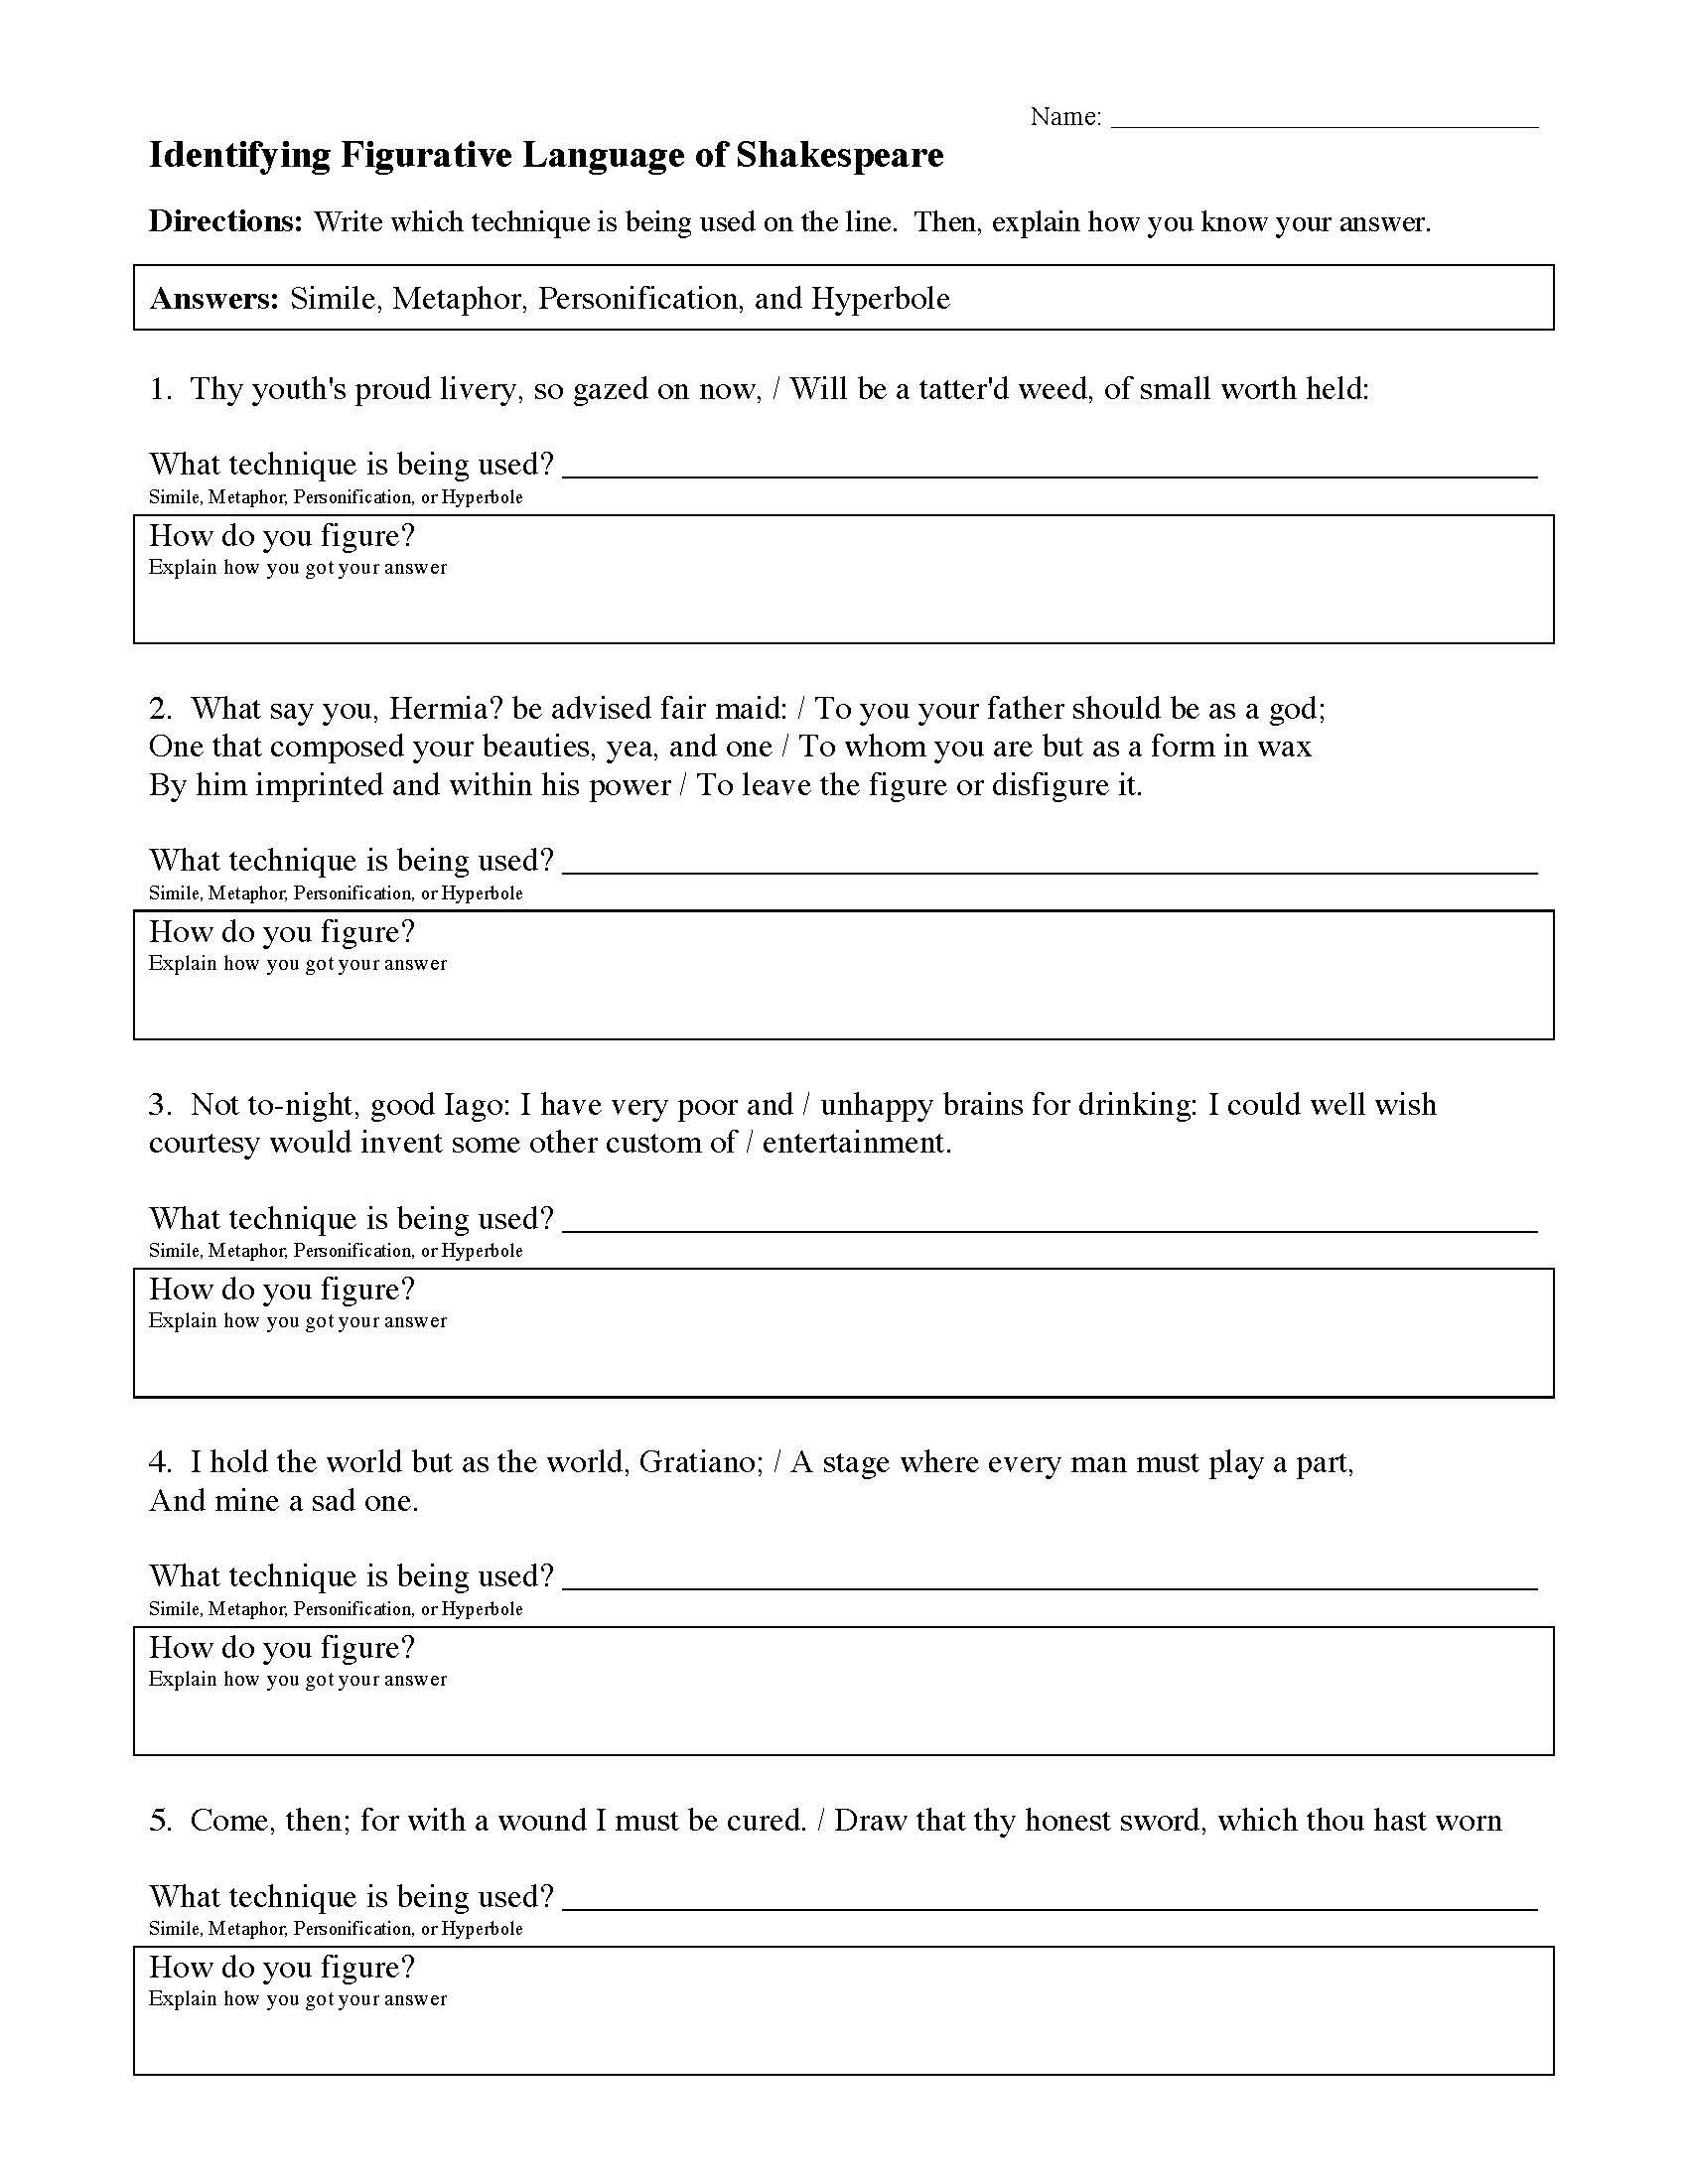 Personification Worksheets 6th Grade Figurative Language Worksheets In 2021 Figurative Language Worksheet Figurative Language Review Language Worksheets